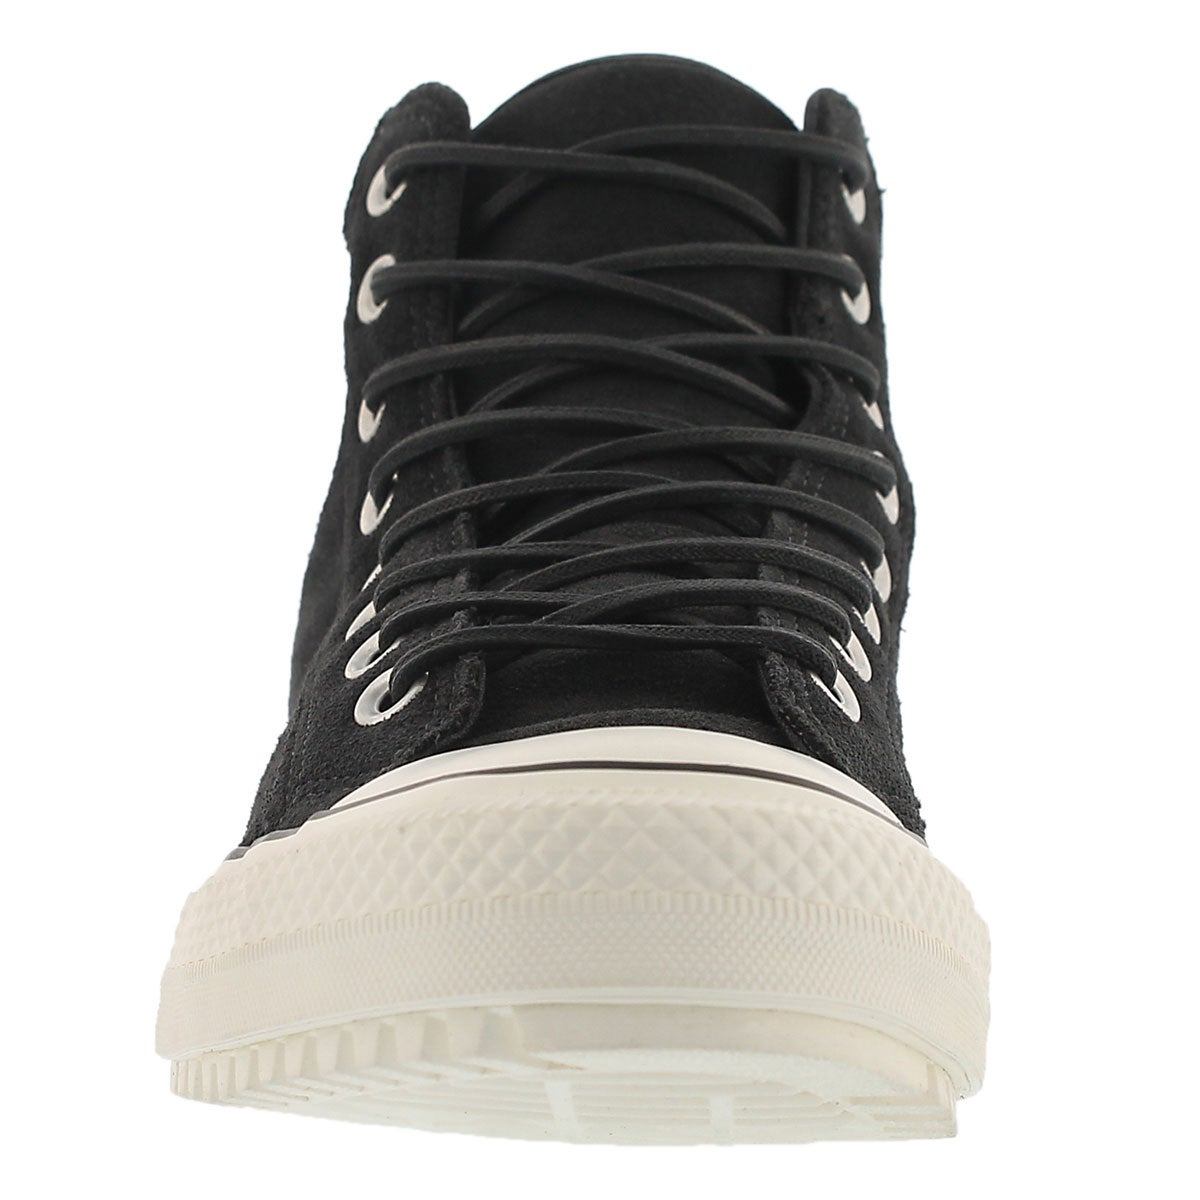 Bottine CT A/S CONVERSE PC M, noir, hom